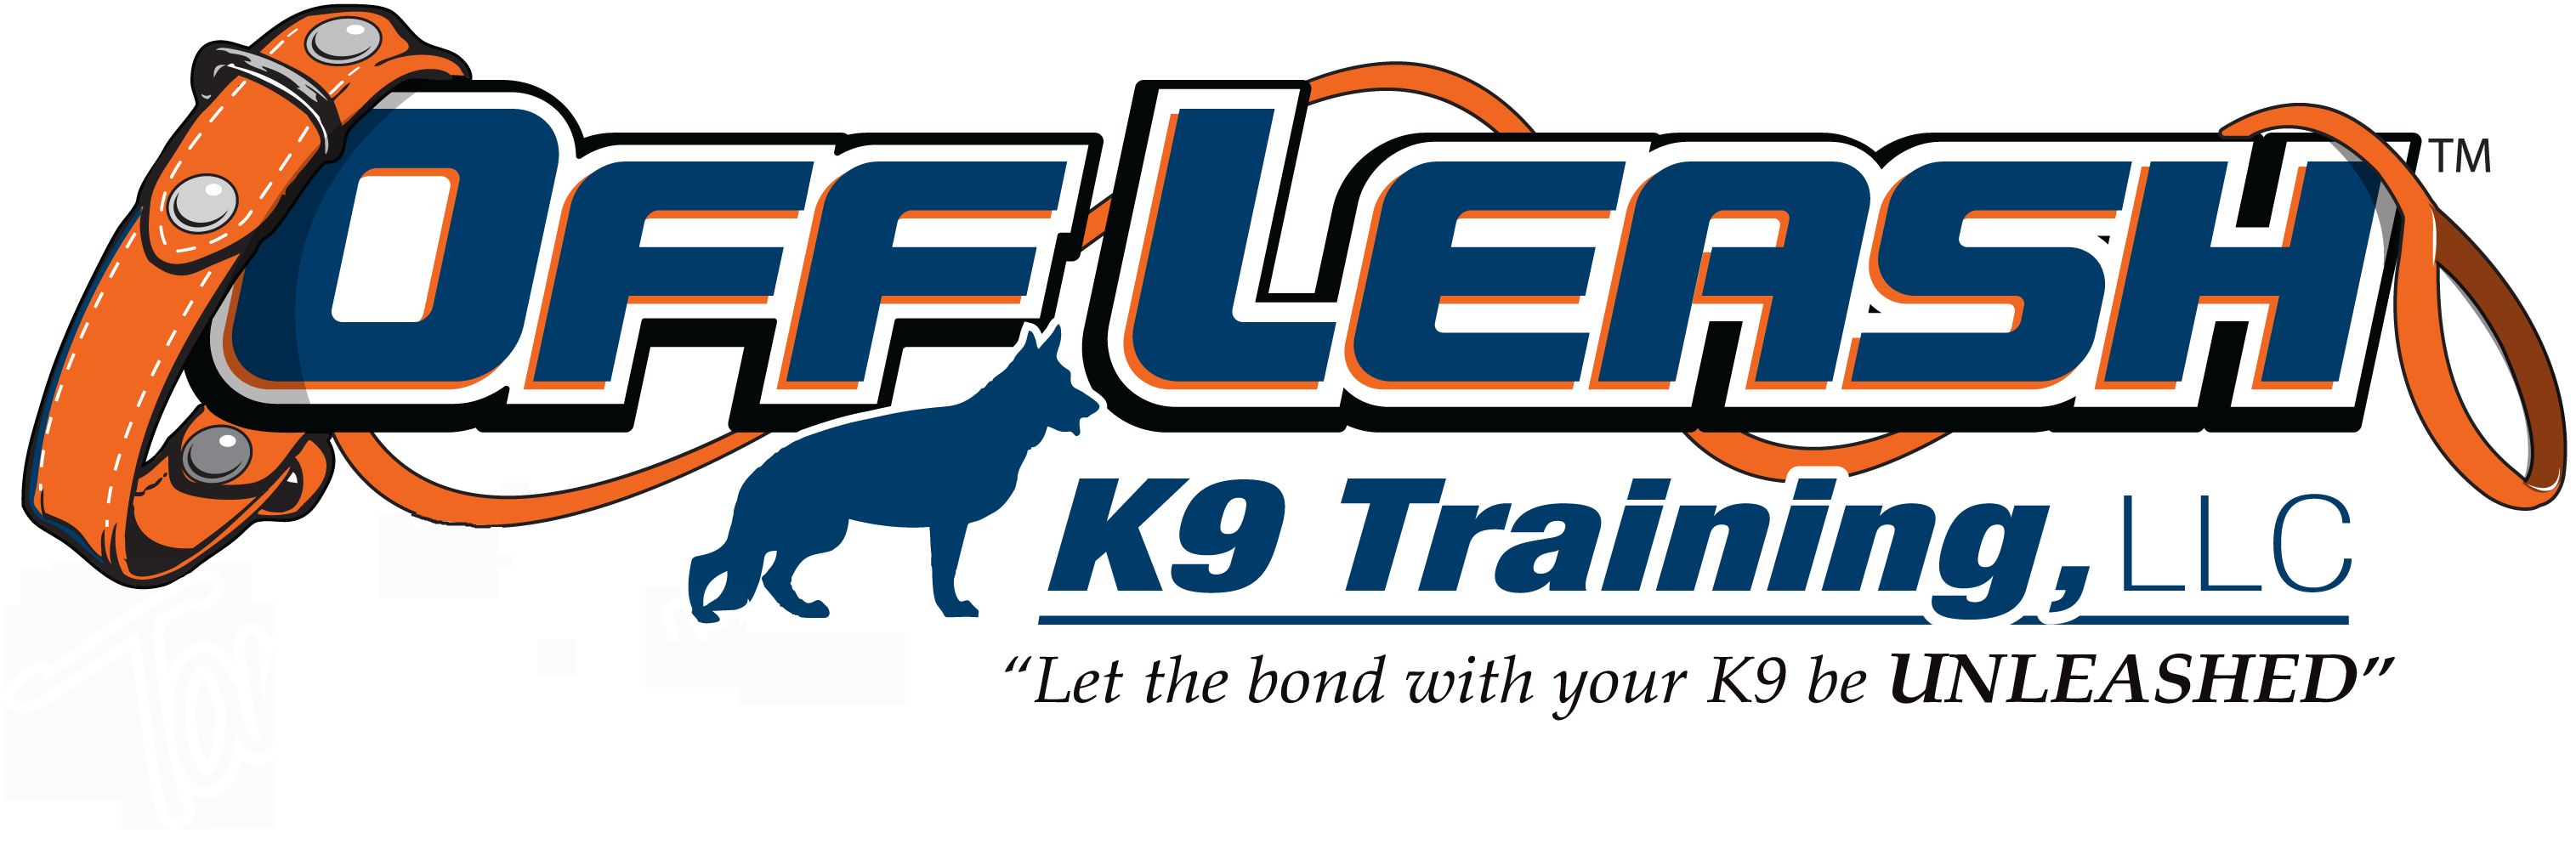 Arlington Offleash K9 Dog Training